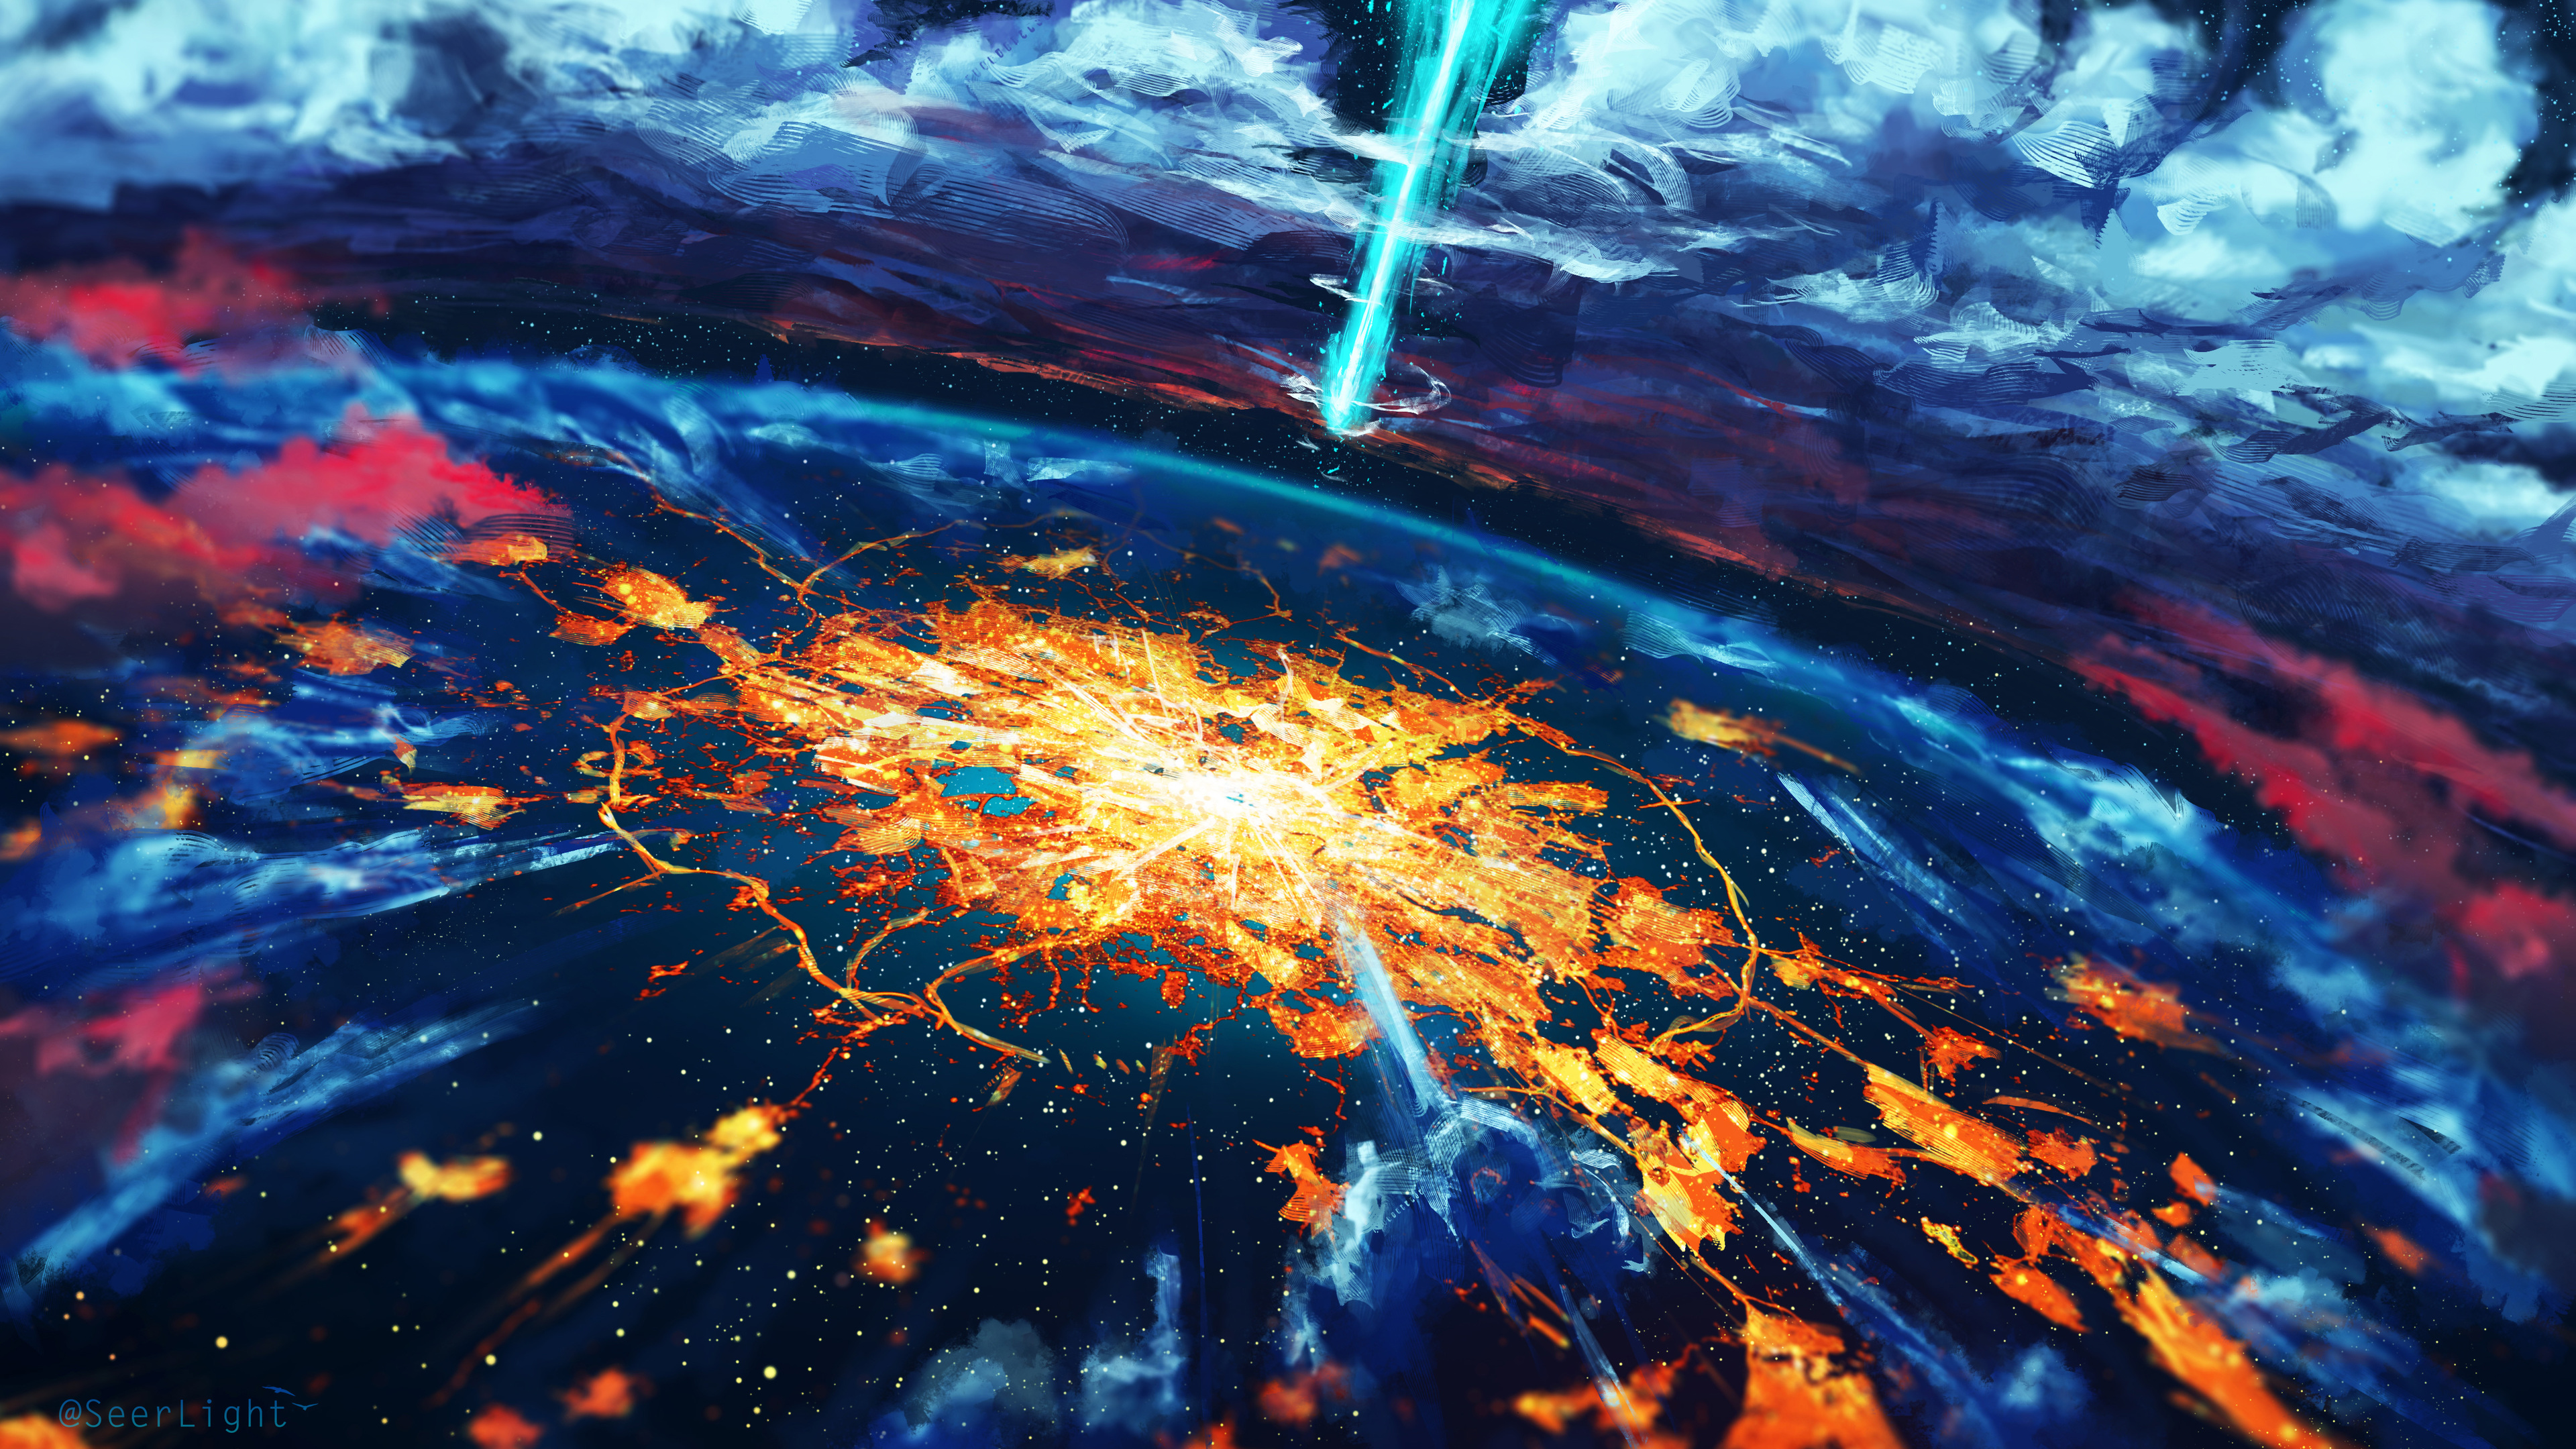 apocalypse cosmos disaster explosion world 4k 1540750646 - Apocalypse Cosmos Disaster Explosion World 4k - hd-wallpapers, explosion wallpapers, deviantart wallpapers, cosmos wallpapers, apocalypse wallpapers, 5k wallpapers, 4k-wallpapers